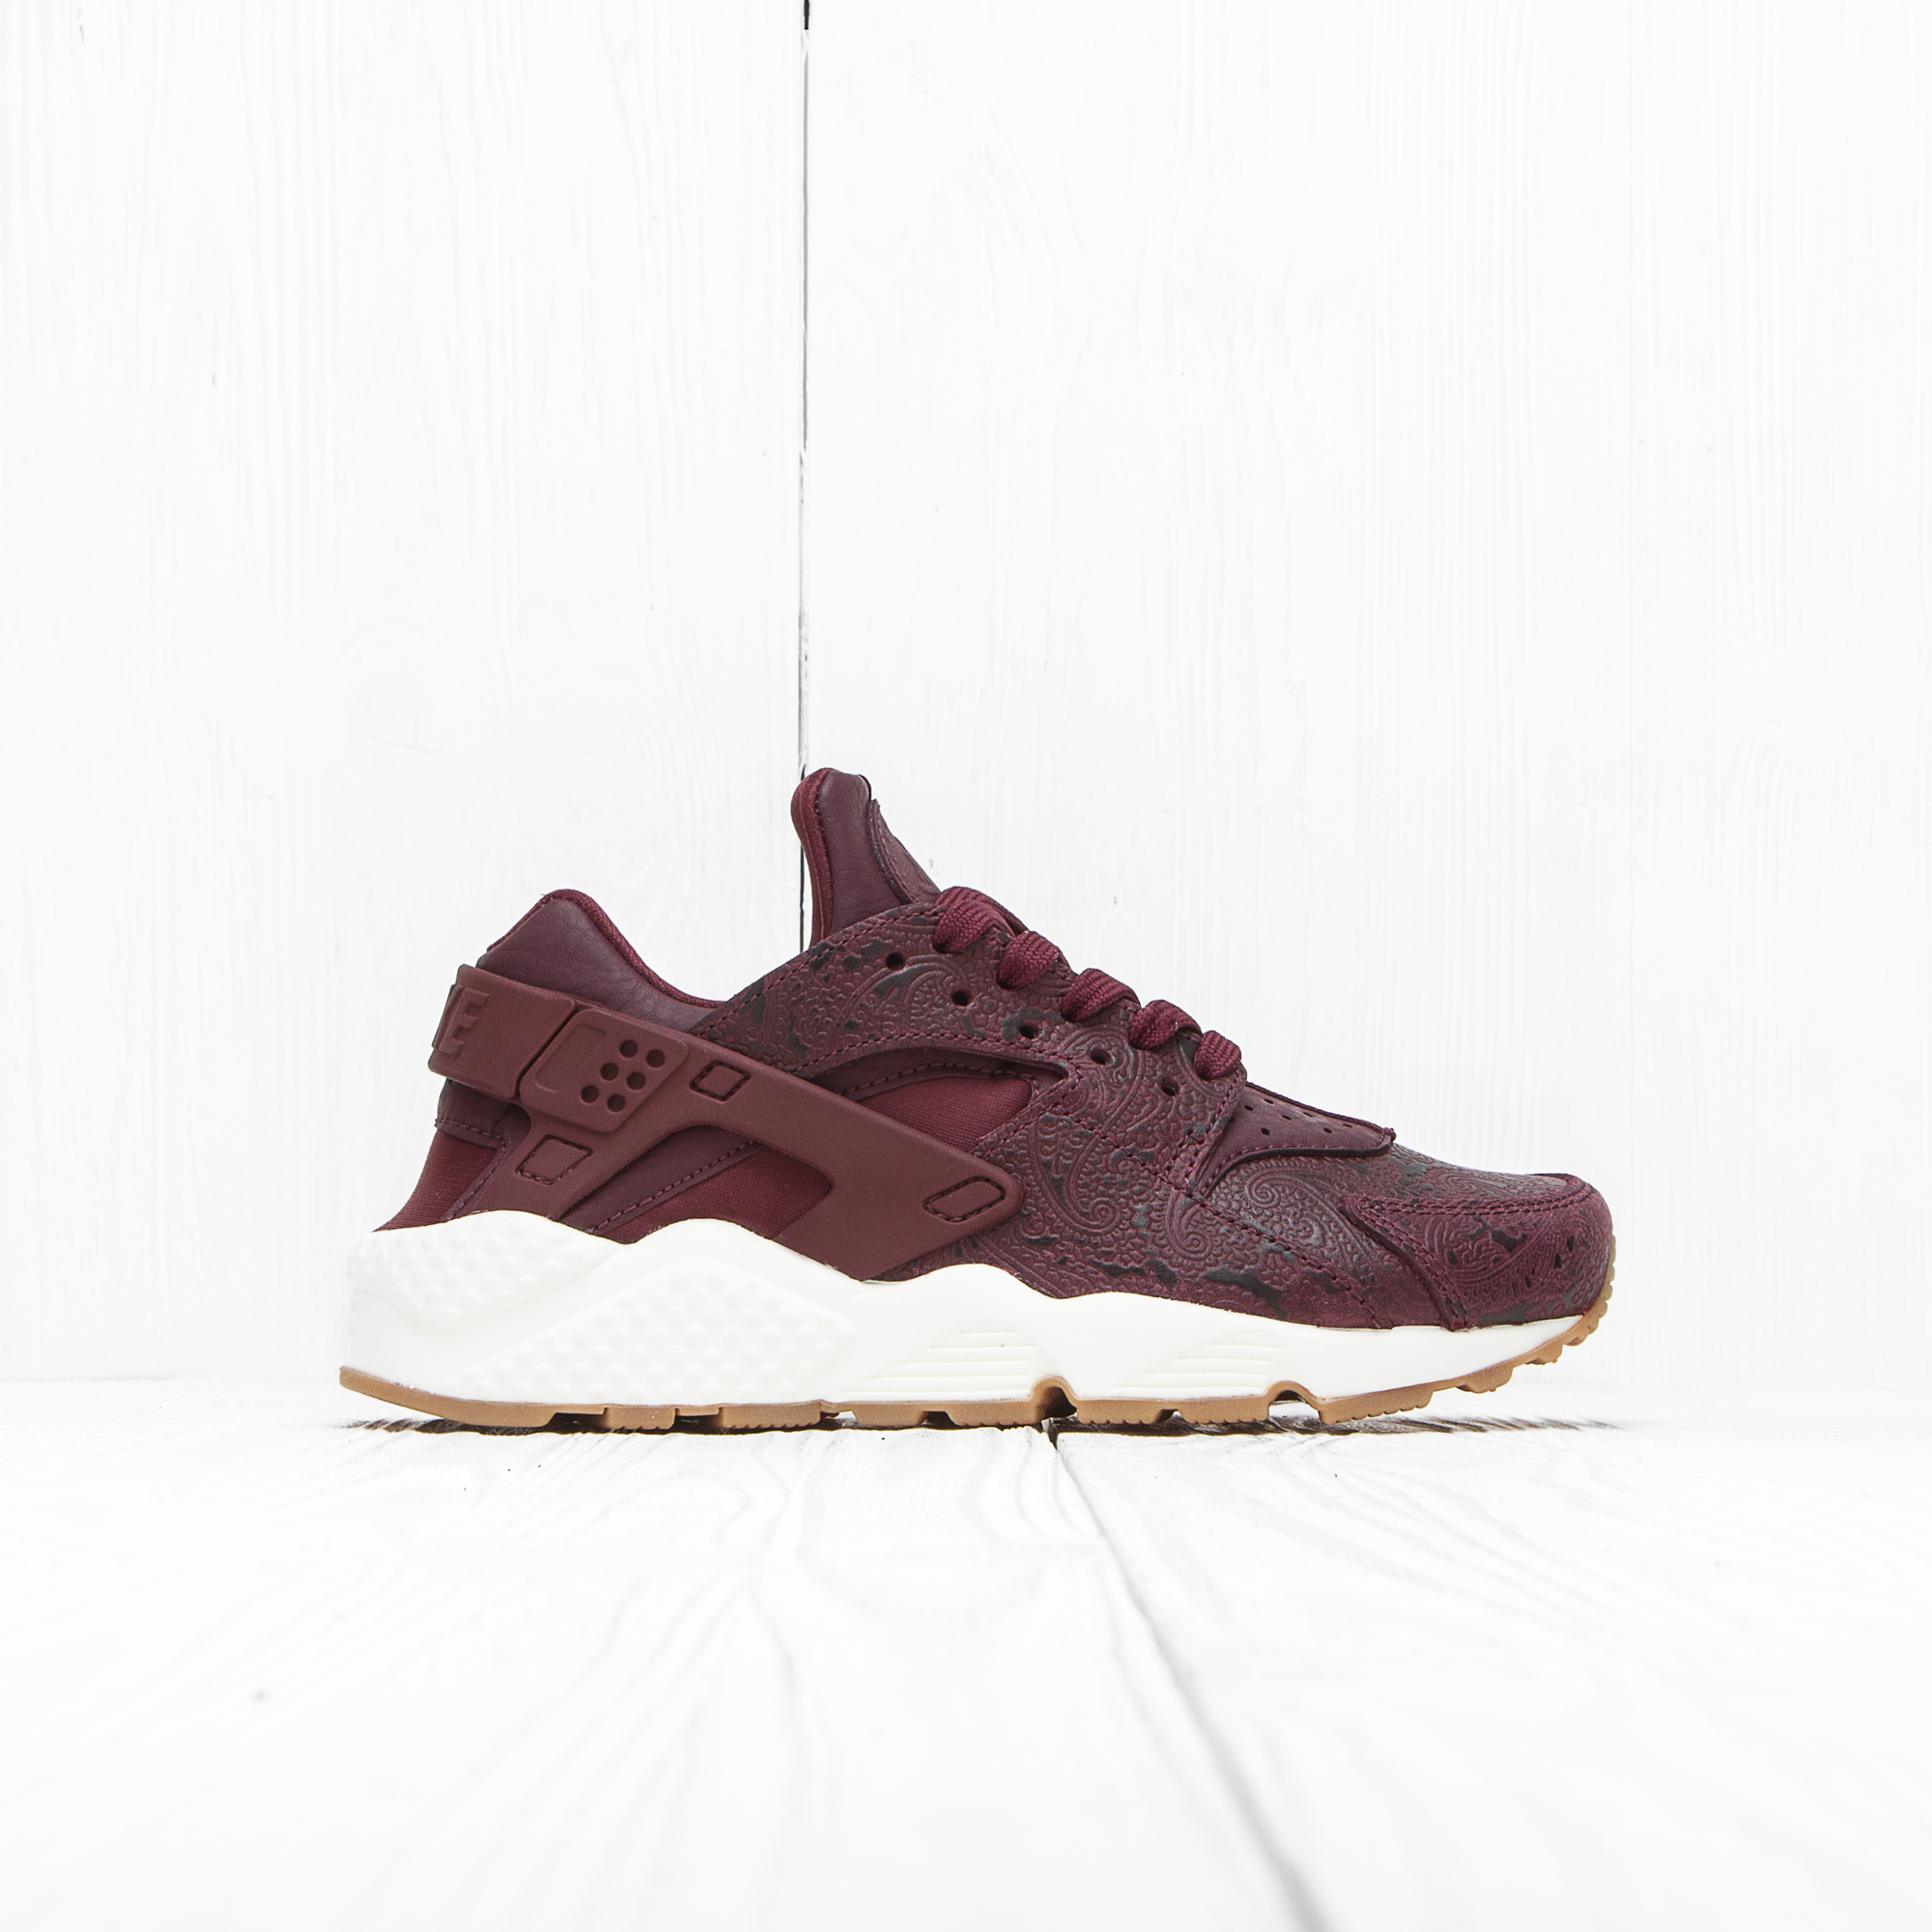 Кроссовки Nike W AIR HUARACHE RUN PRM Night Maroon/Night Maroon-Sail